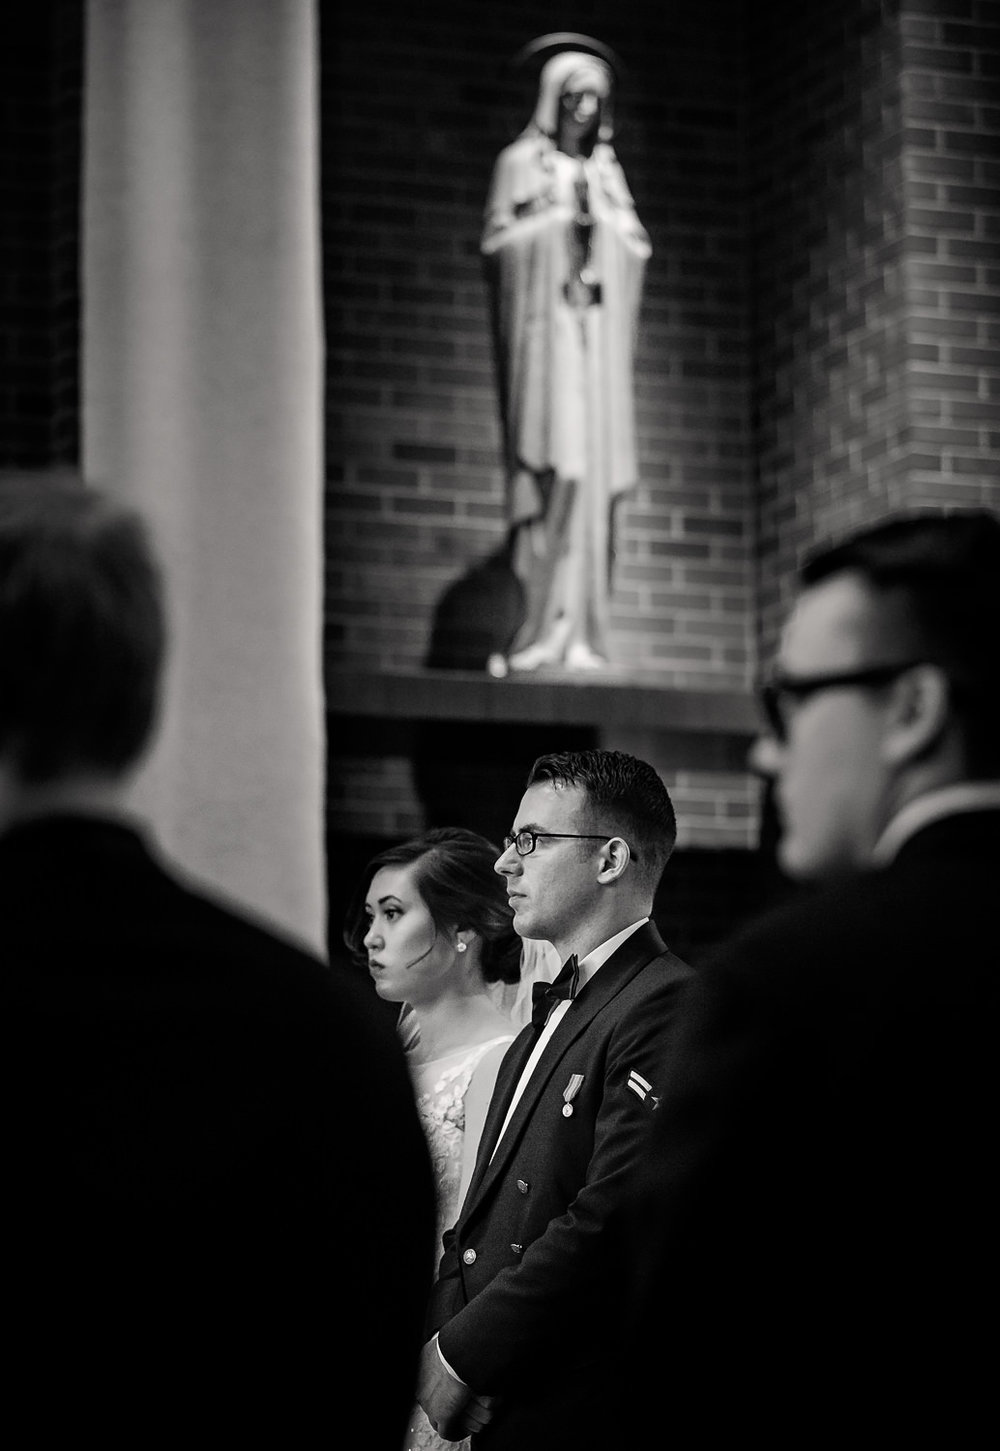 laurel-montana-wedding-catholic-church-ceremony.jpg